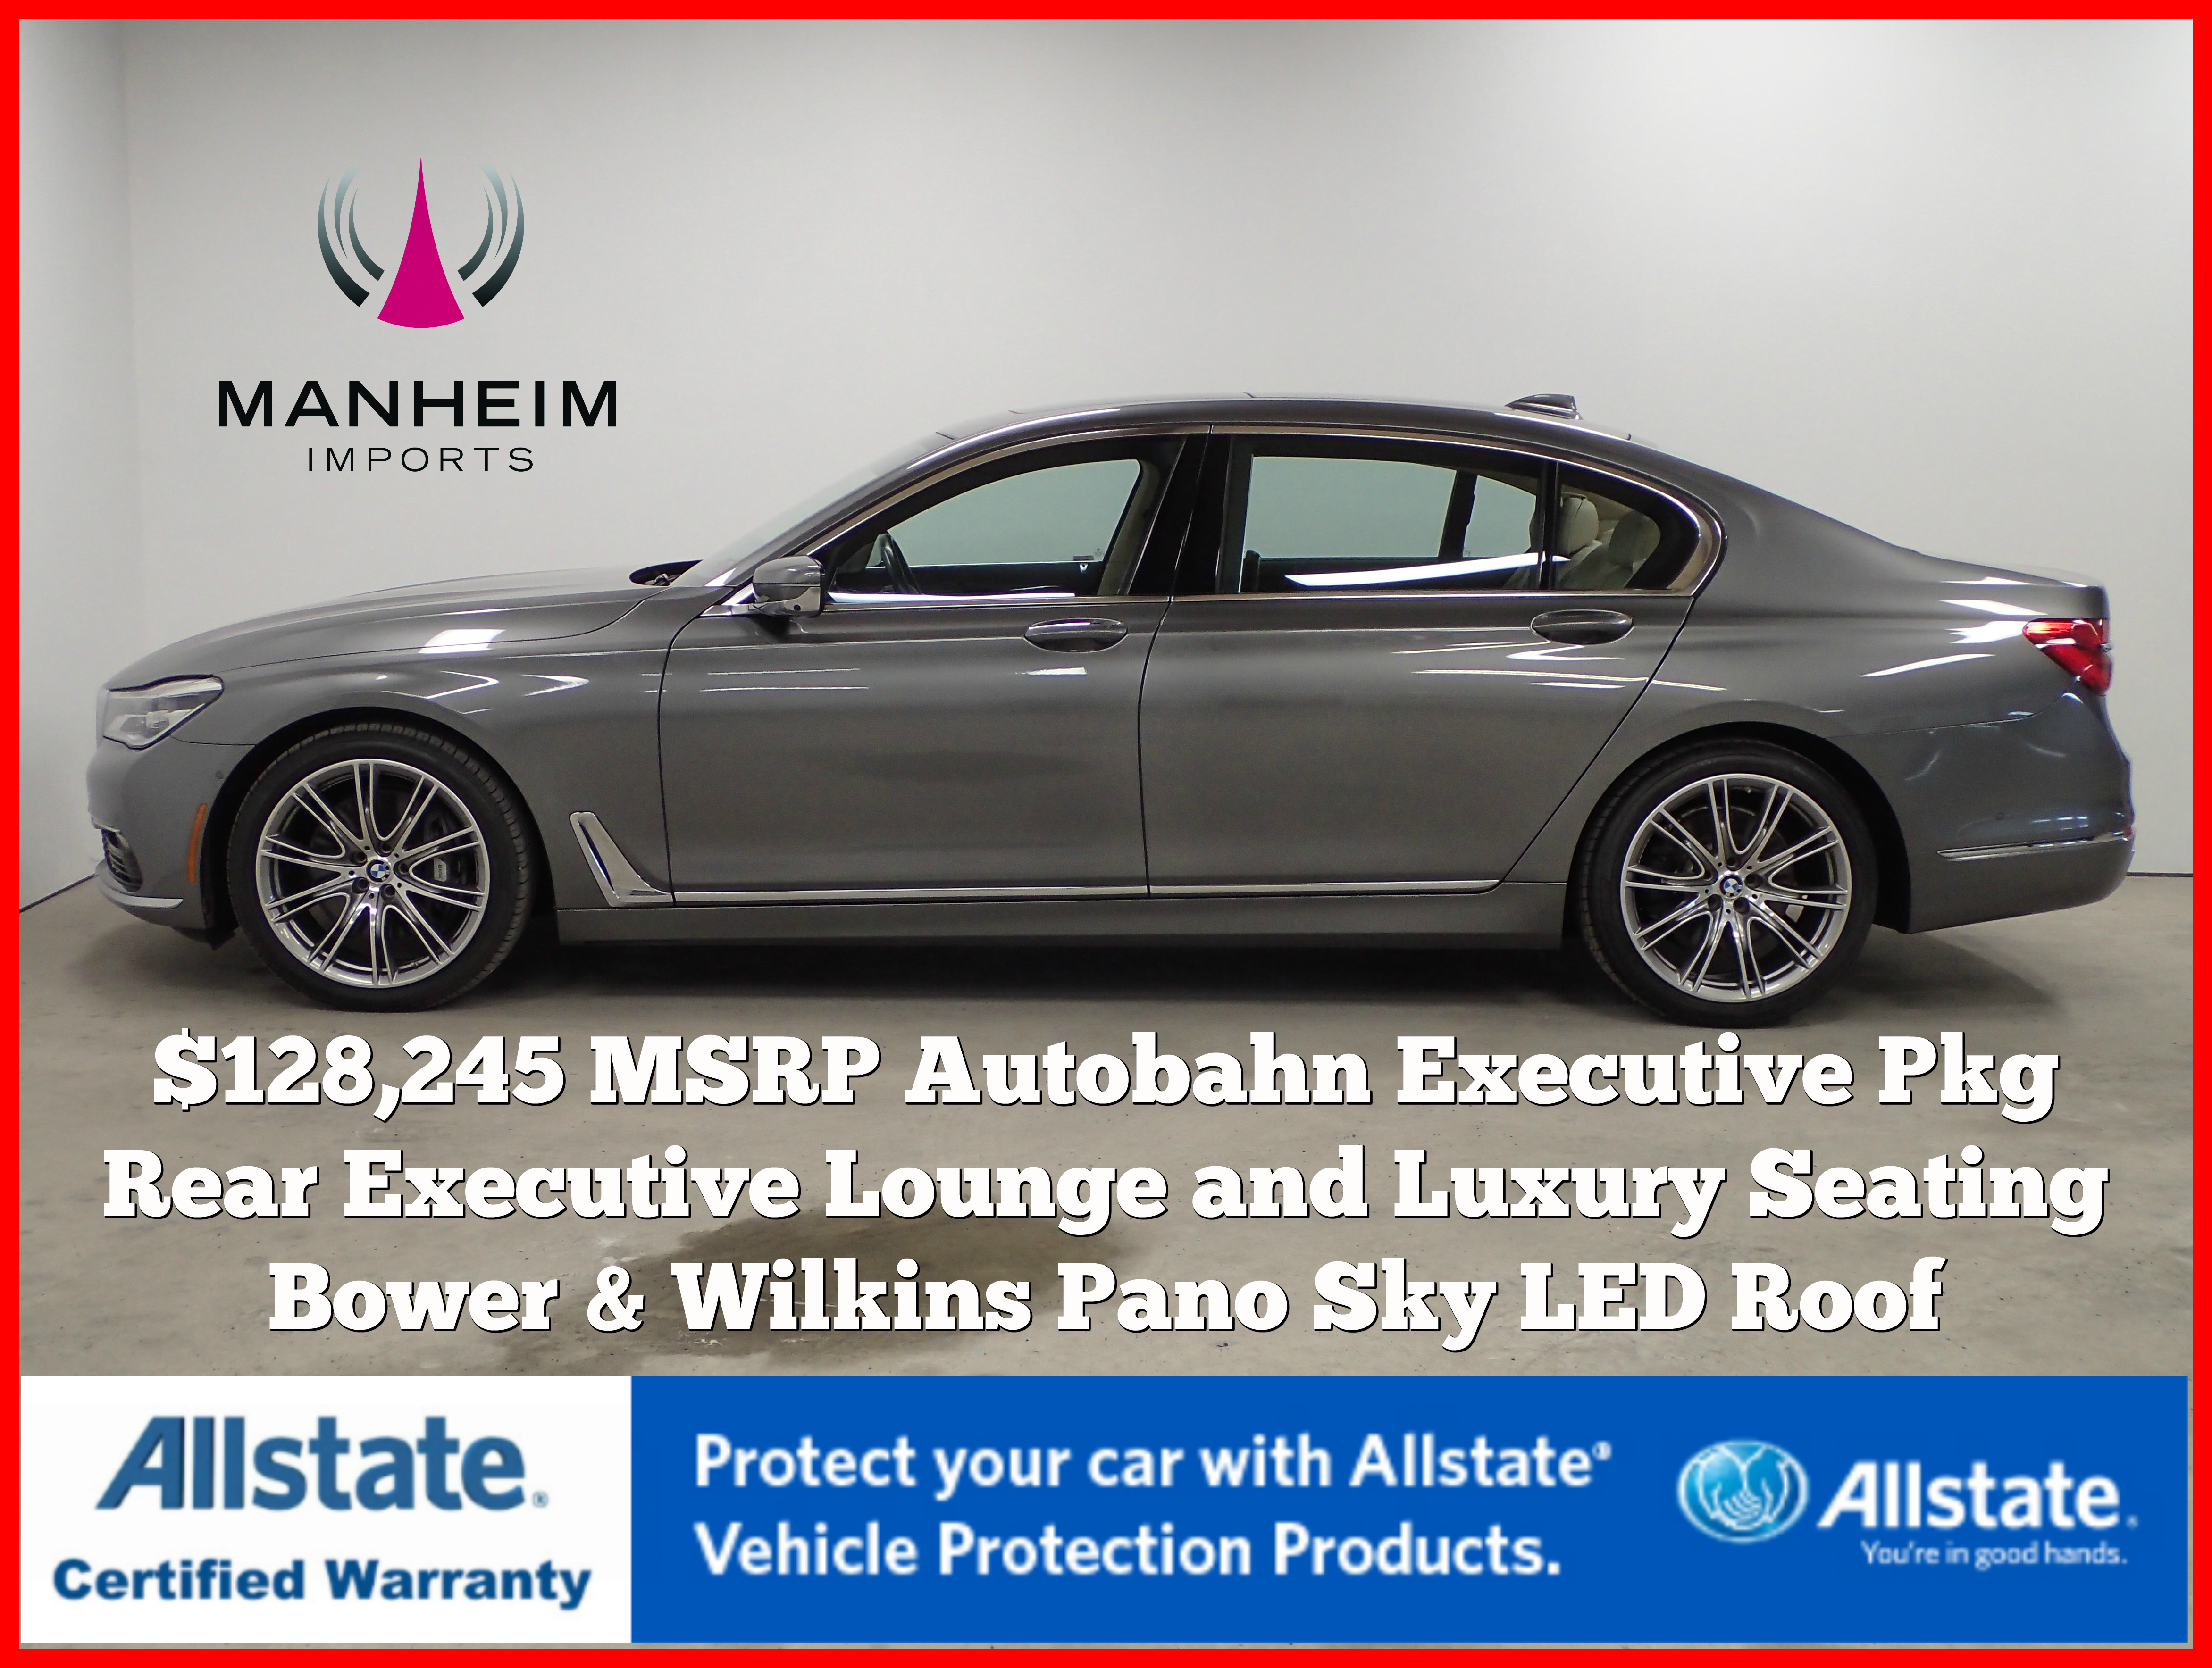 Pre-Owned 2016 BMW 750i xDrive Autobahn $128,245 MSRP